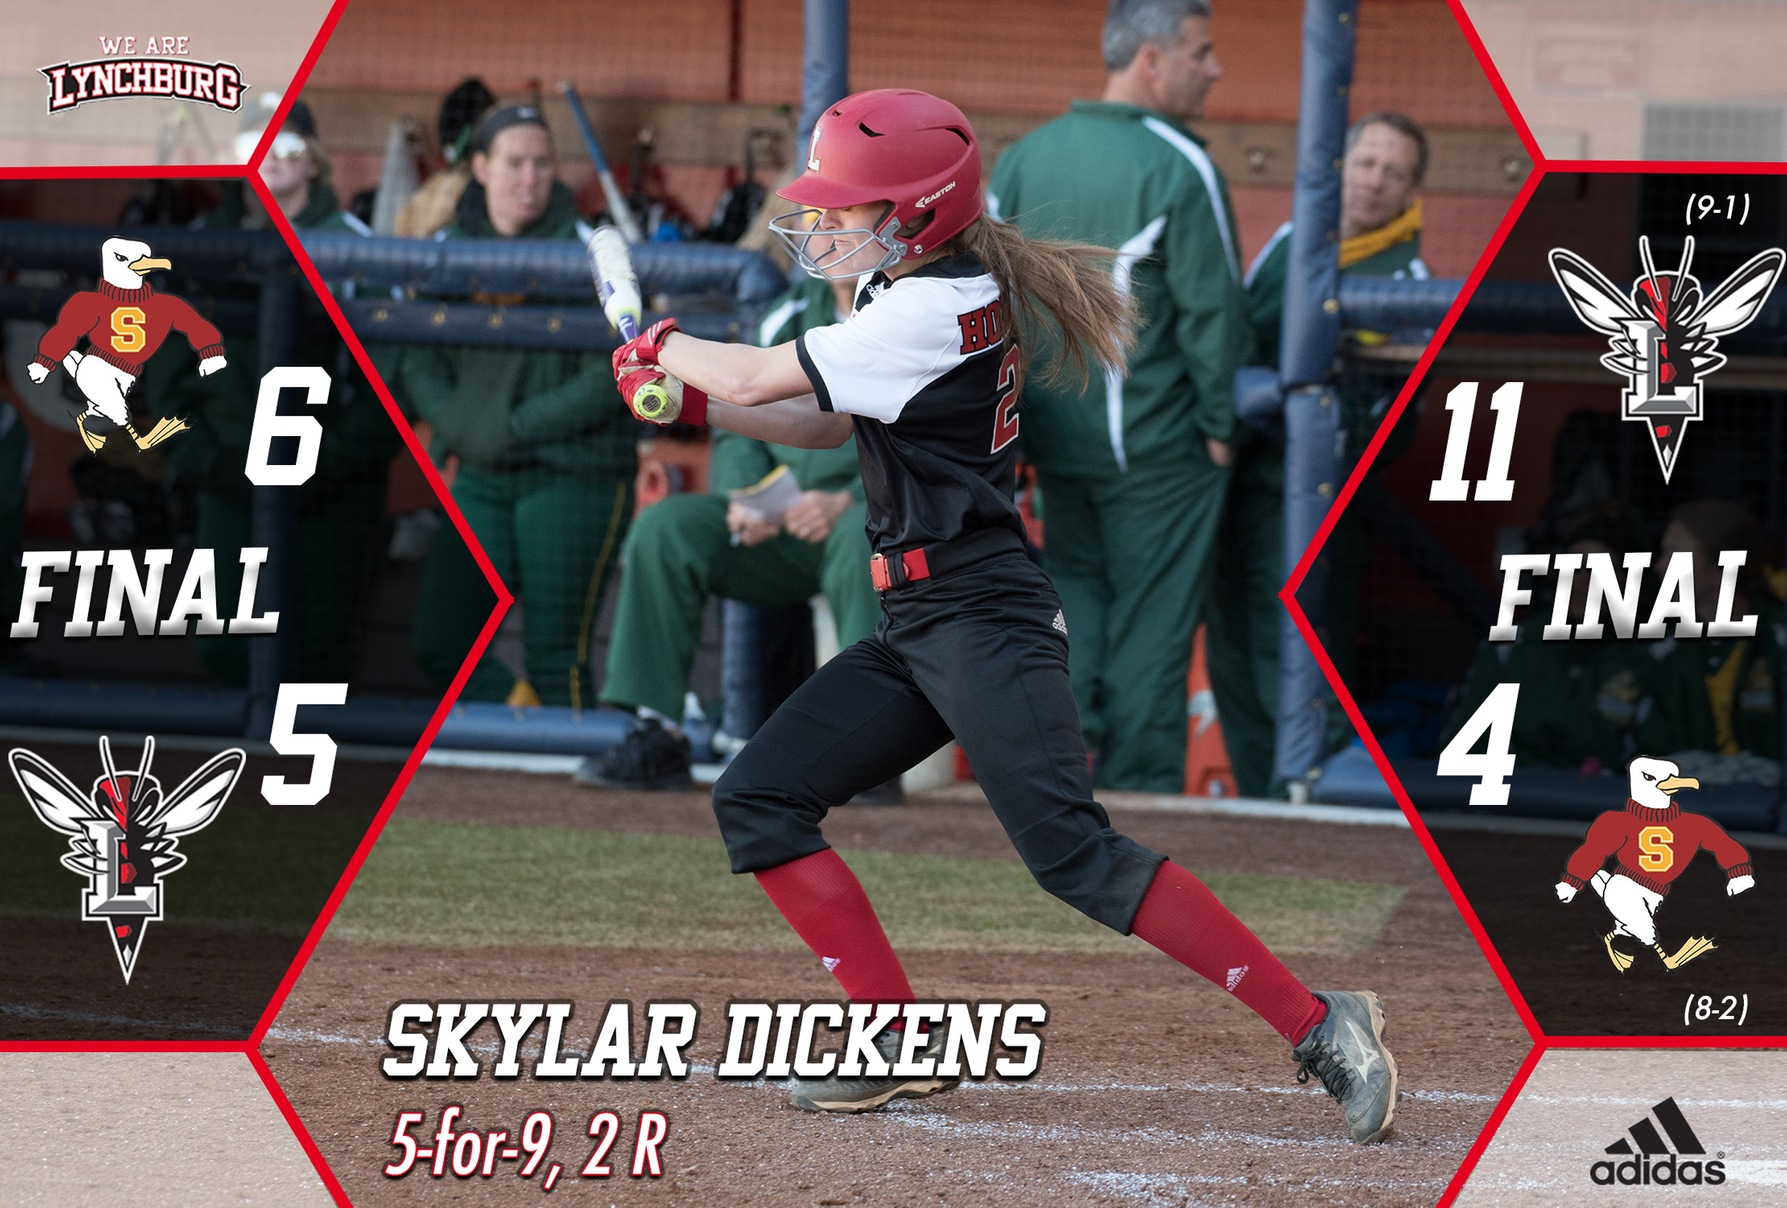 Skylar Dickens hits a softball. Text: Skylar Dickens 5-for-9, 2 R